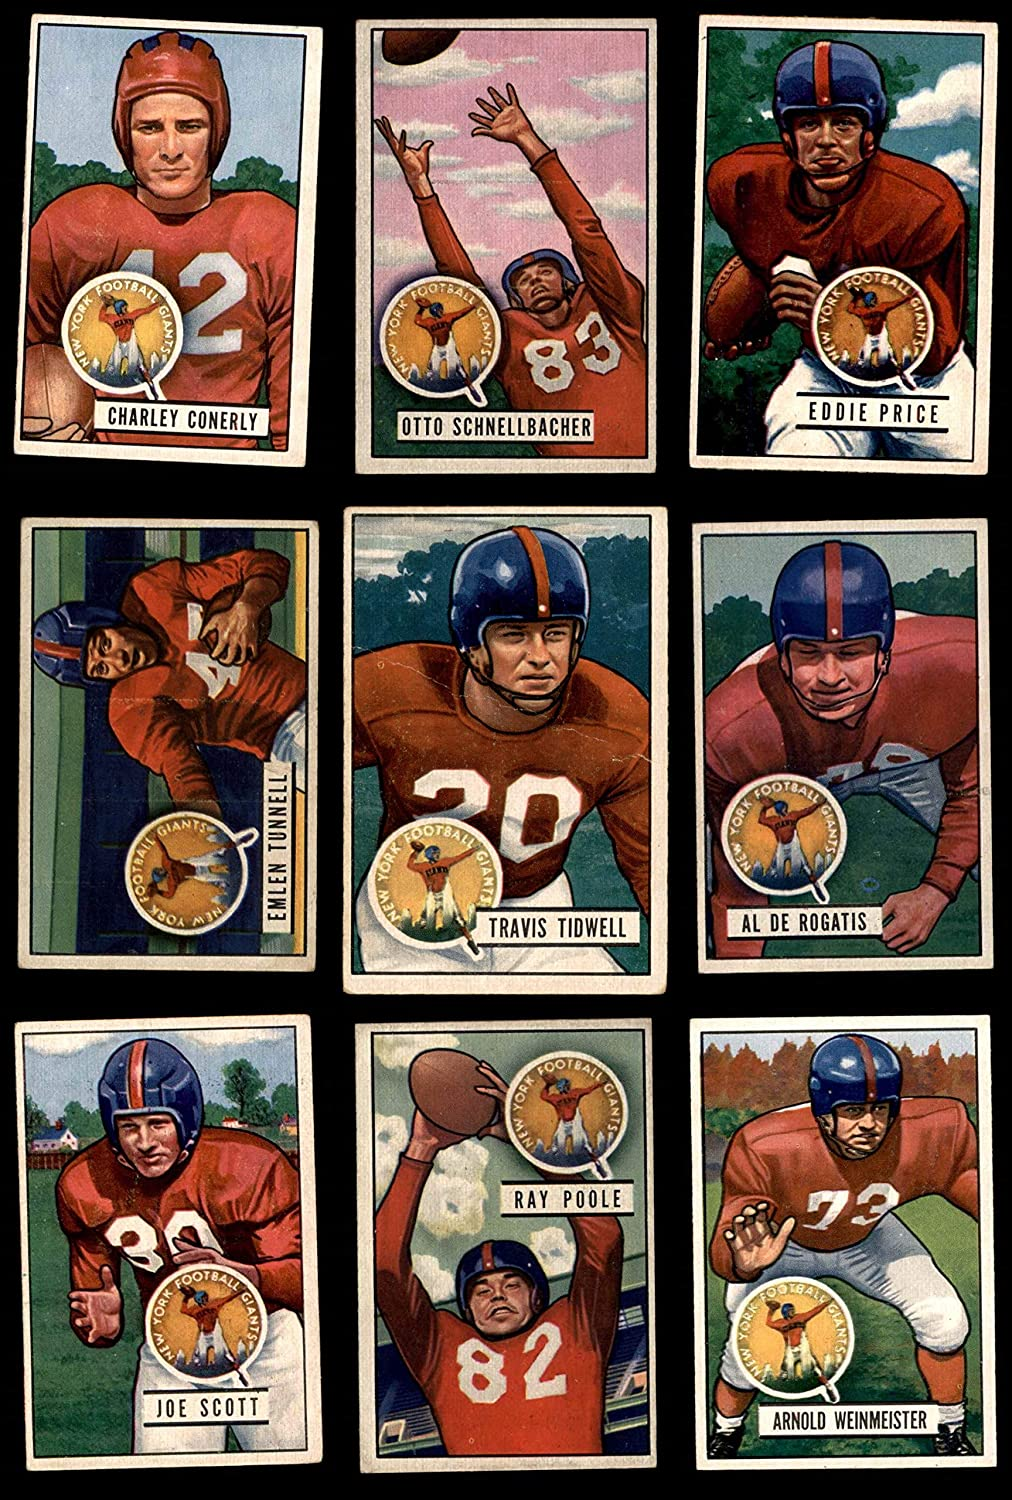 1951 Bowman New York Giants Team Set New York Giants-FB (Baseball Set) Dean's Cards 5.5 - EX+ Giants-FB 9118eoCoyILSL1500_